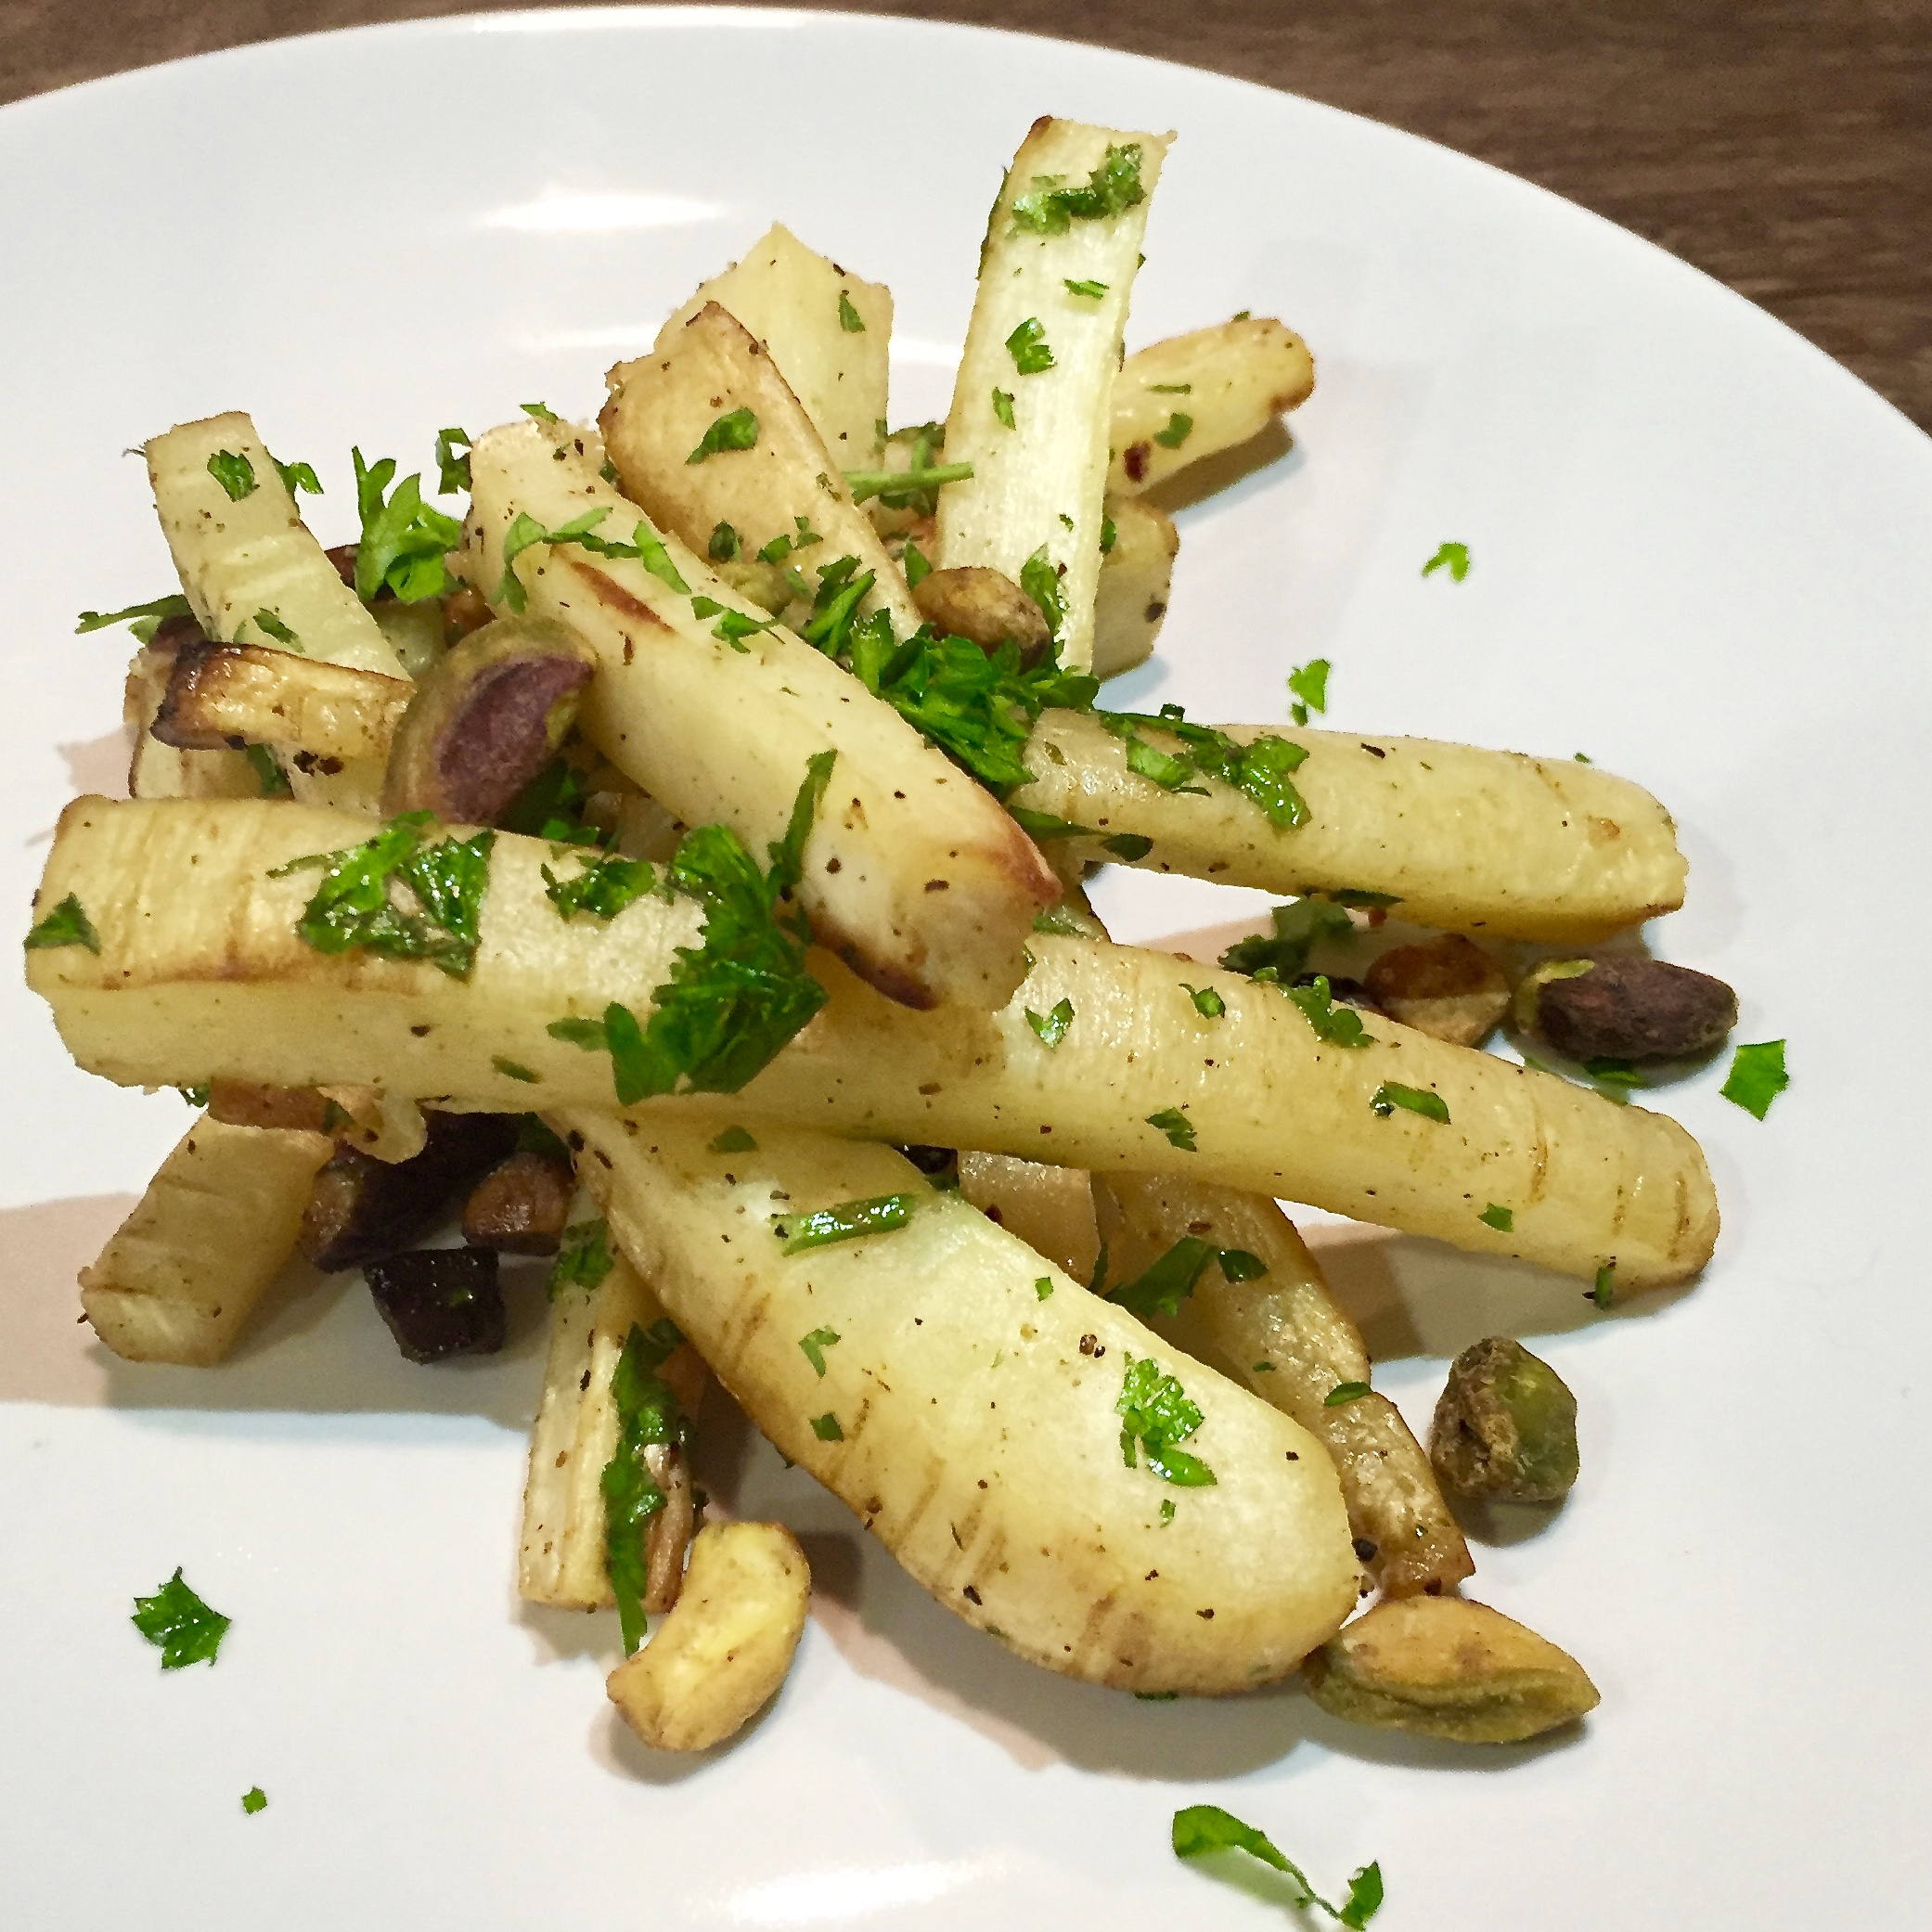 Roasted-parsnips-pistachios-lemon-parsley